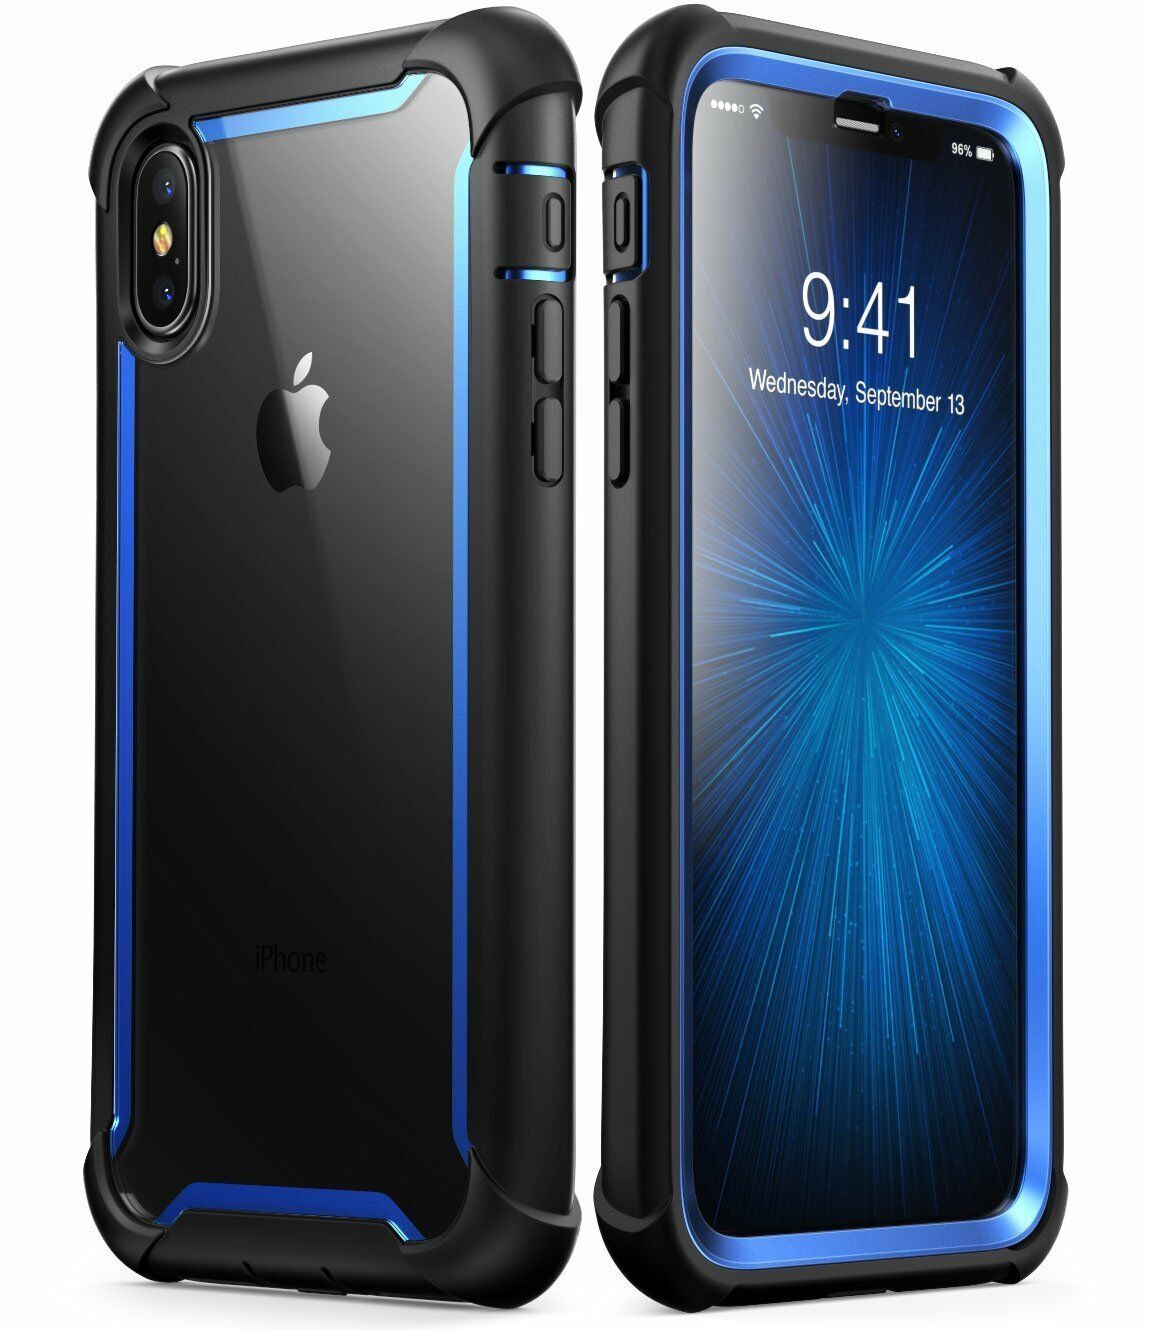 info for e3b89 0ff9b Details about iPhone X / XS Case i-Blason Ares Cover Built-in Screen  Protector For iPhone 10